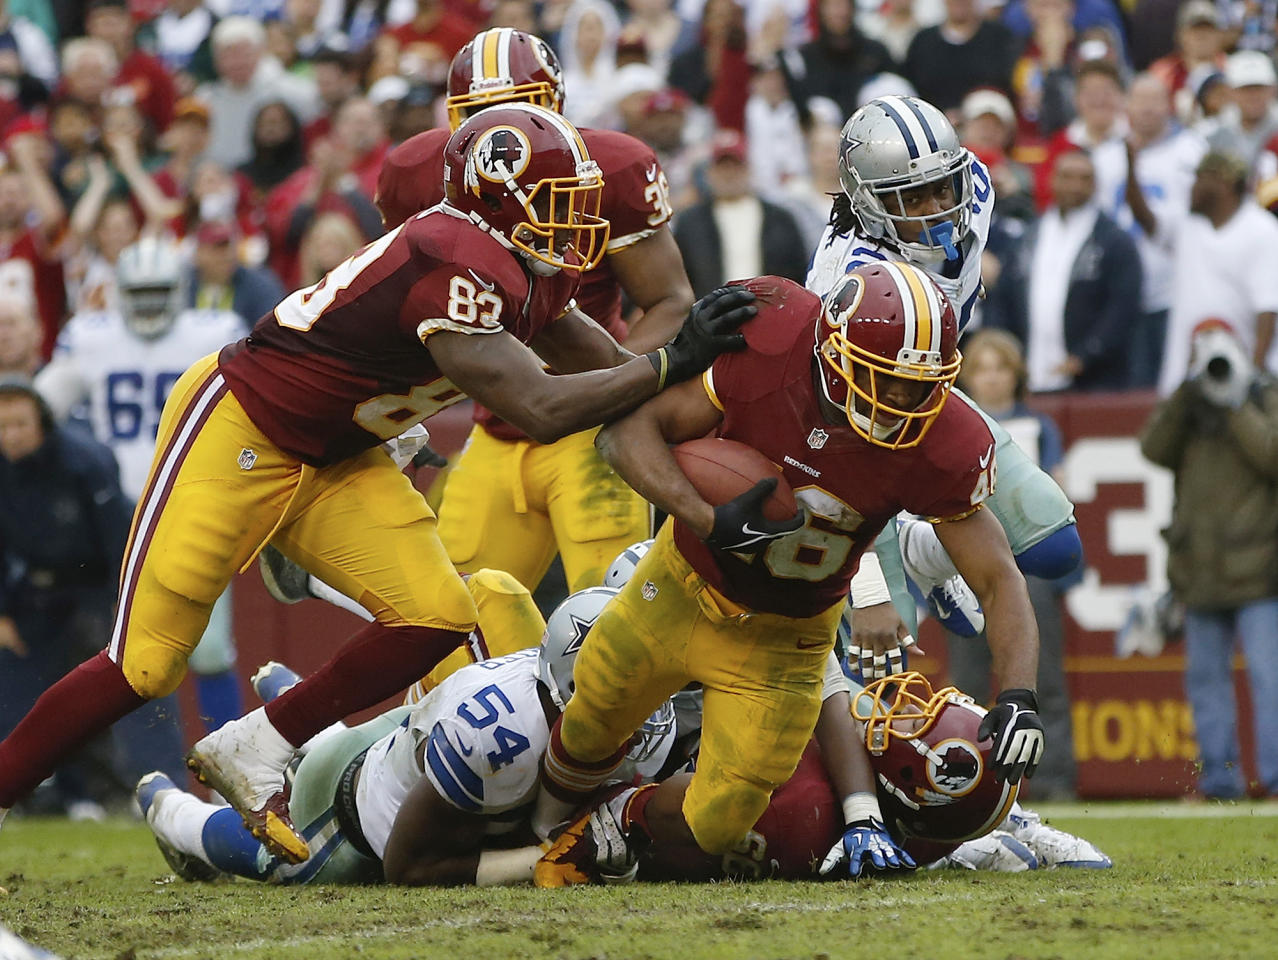 Washington Redskins running back Alfred Morris is dragged down by Dallas Cowboys outside linebacker Bruce Carter (54) during the second half of an NFL football game in Landover, Md., Sunday, Dec. 22, 2013. (AP Photo/Evan Vucci)